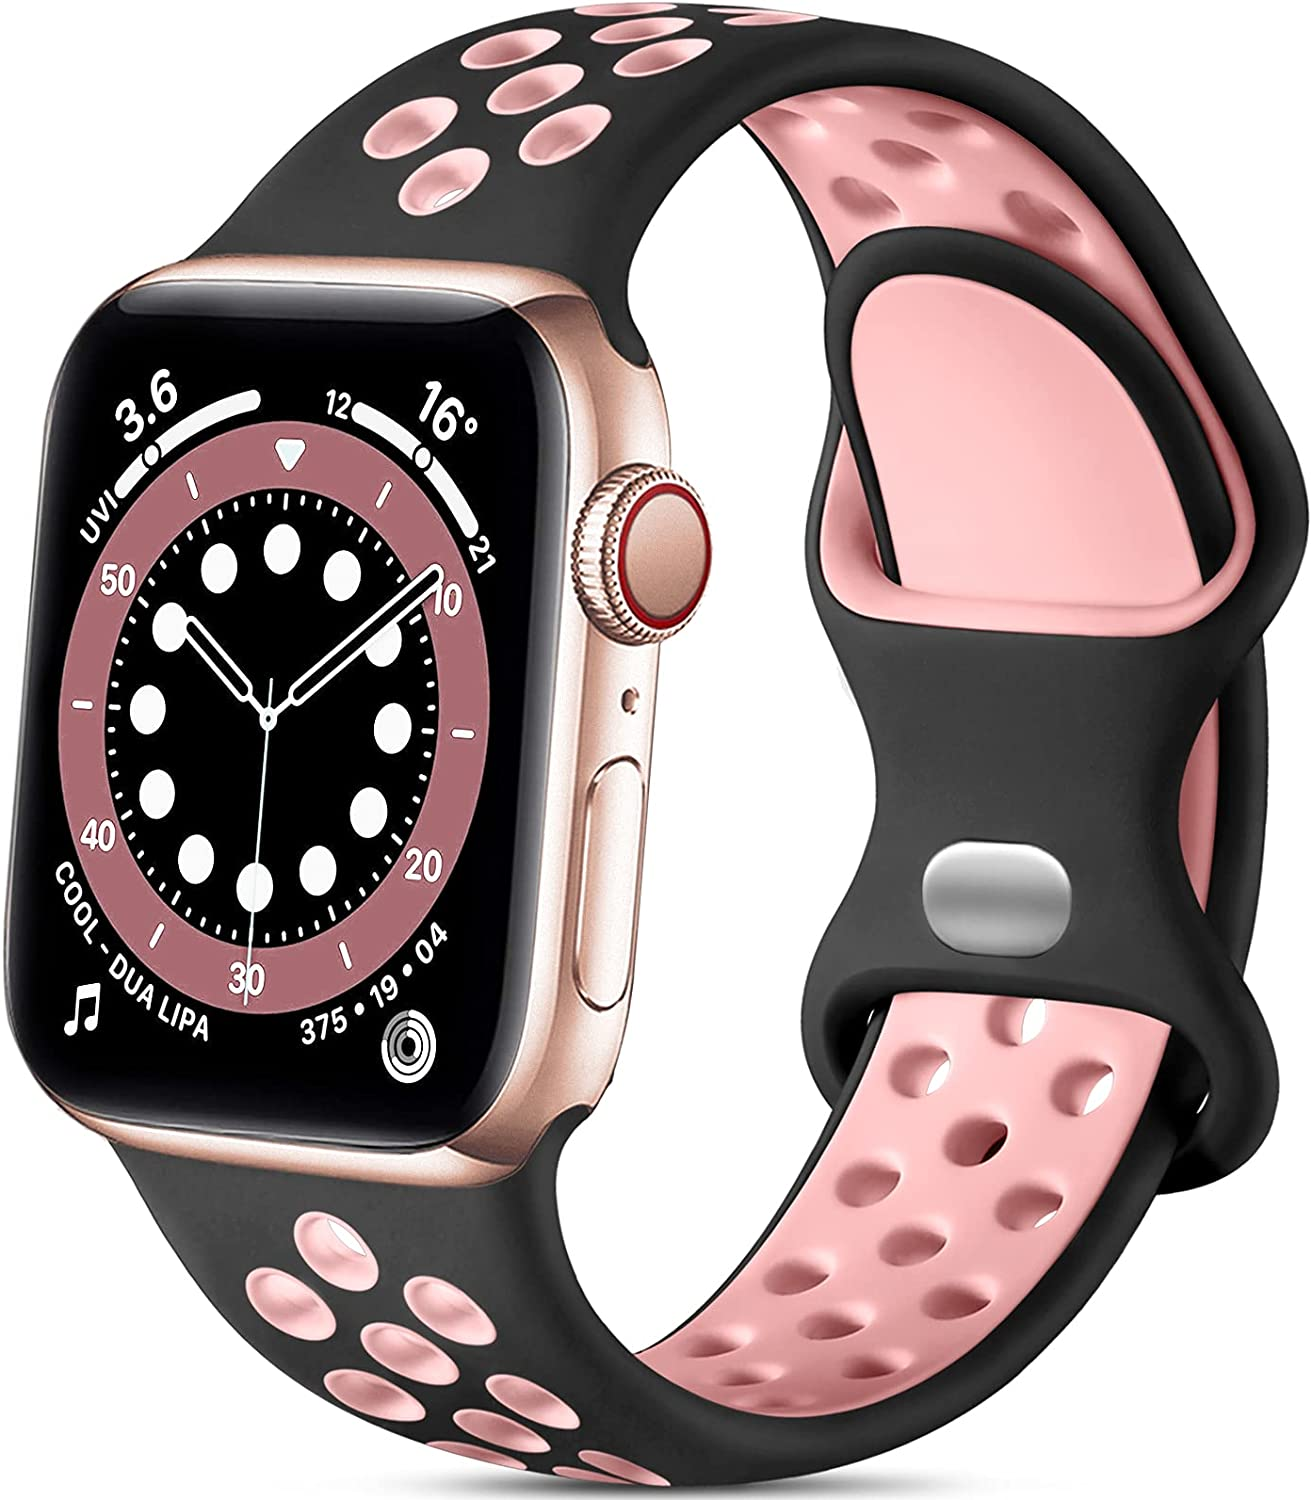 Lerobo Compatible with Apple Watch Bands 40mm 38mm for Women Men, Soft Silicone Sport Bands Replacement Wristbands Compatible for iWatch SE & Series 6 5 4 3 2 1, Sport Edition, Black/Pink, S/M